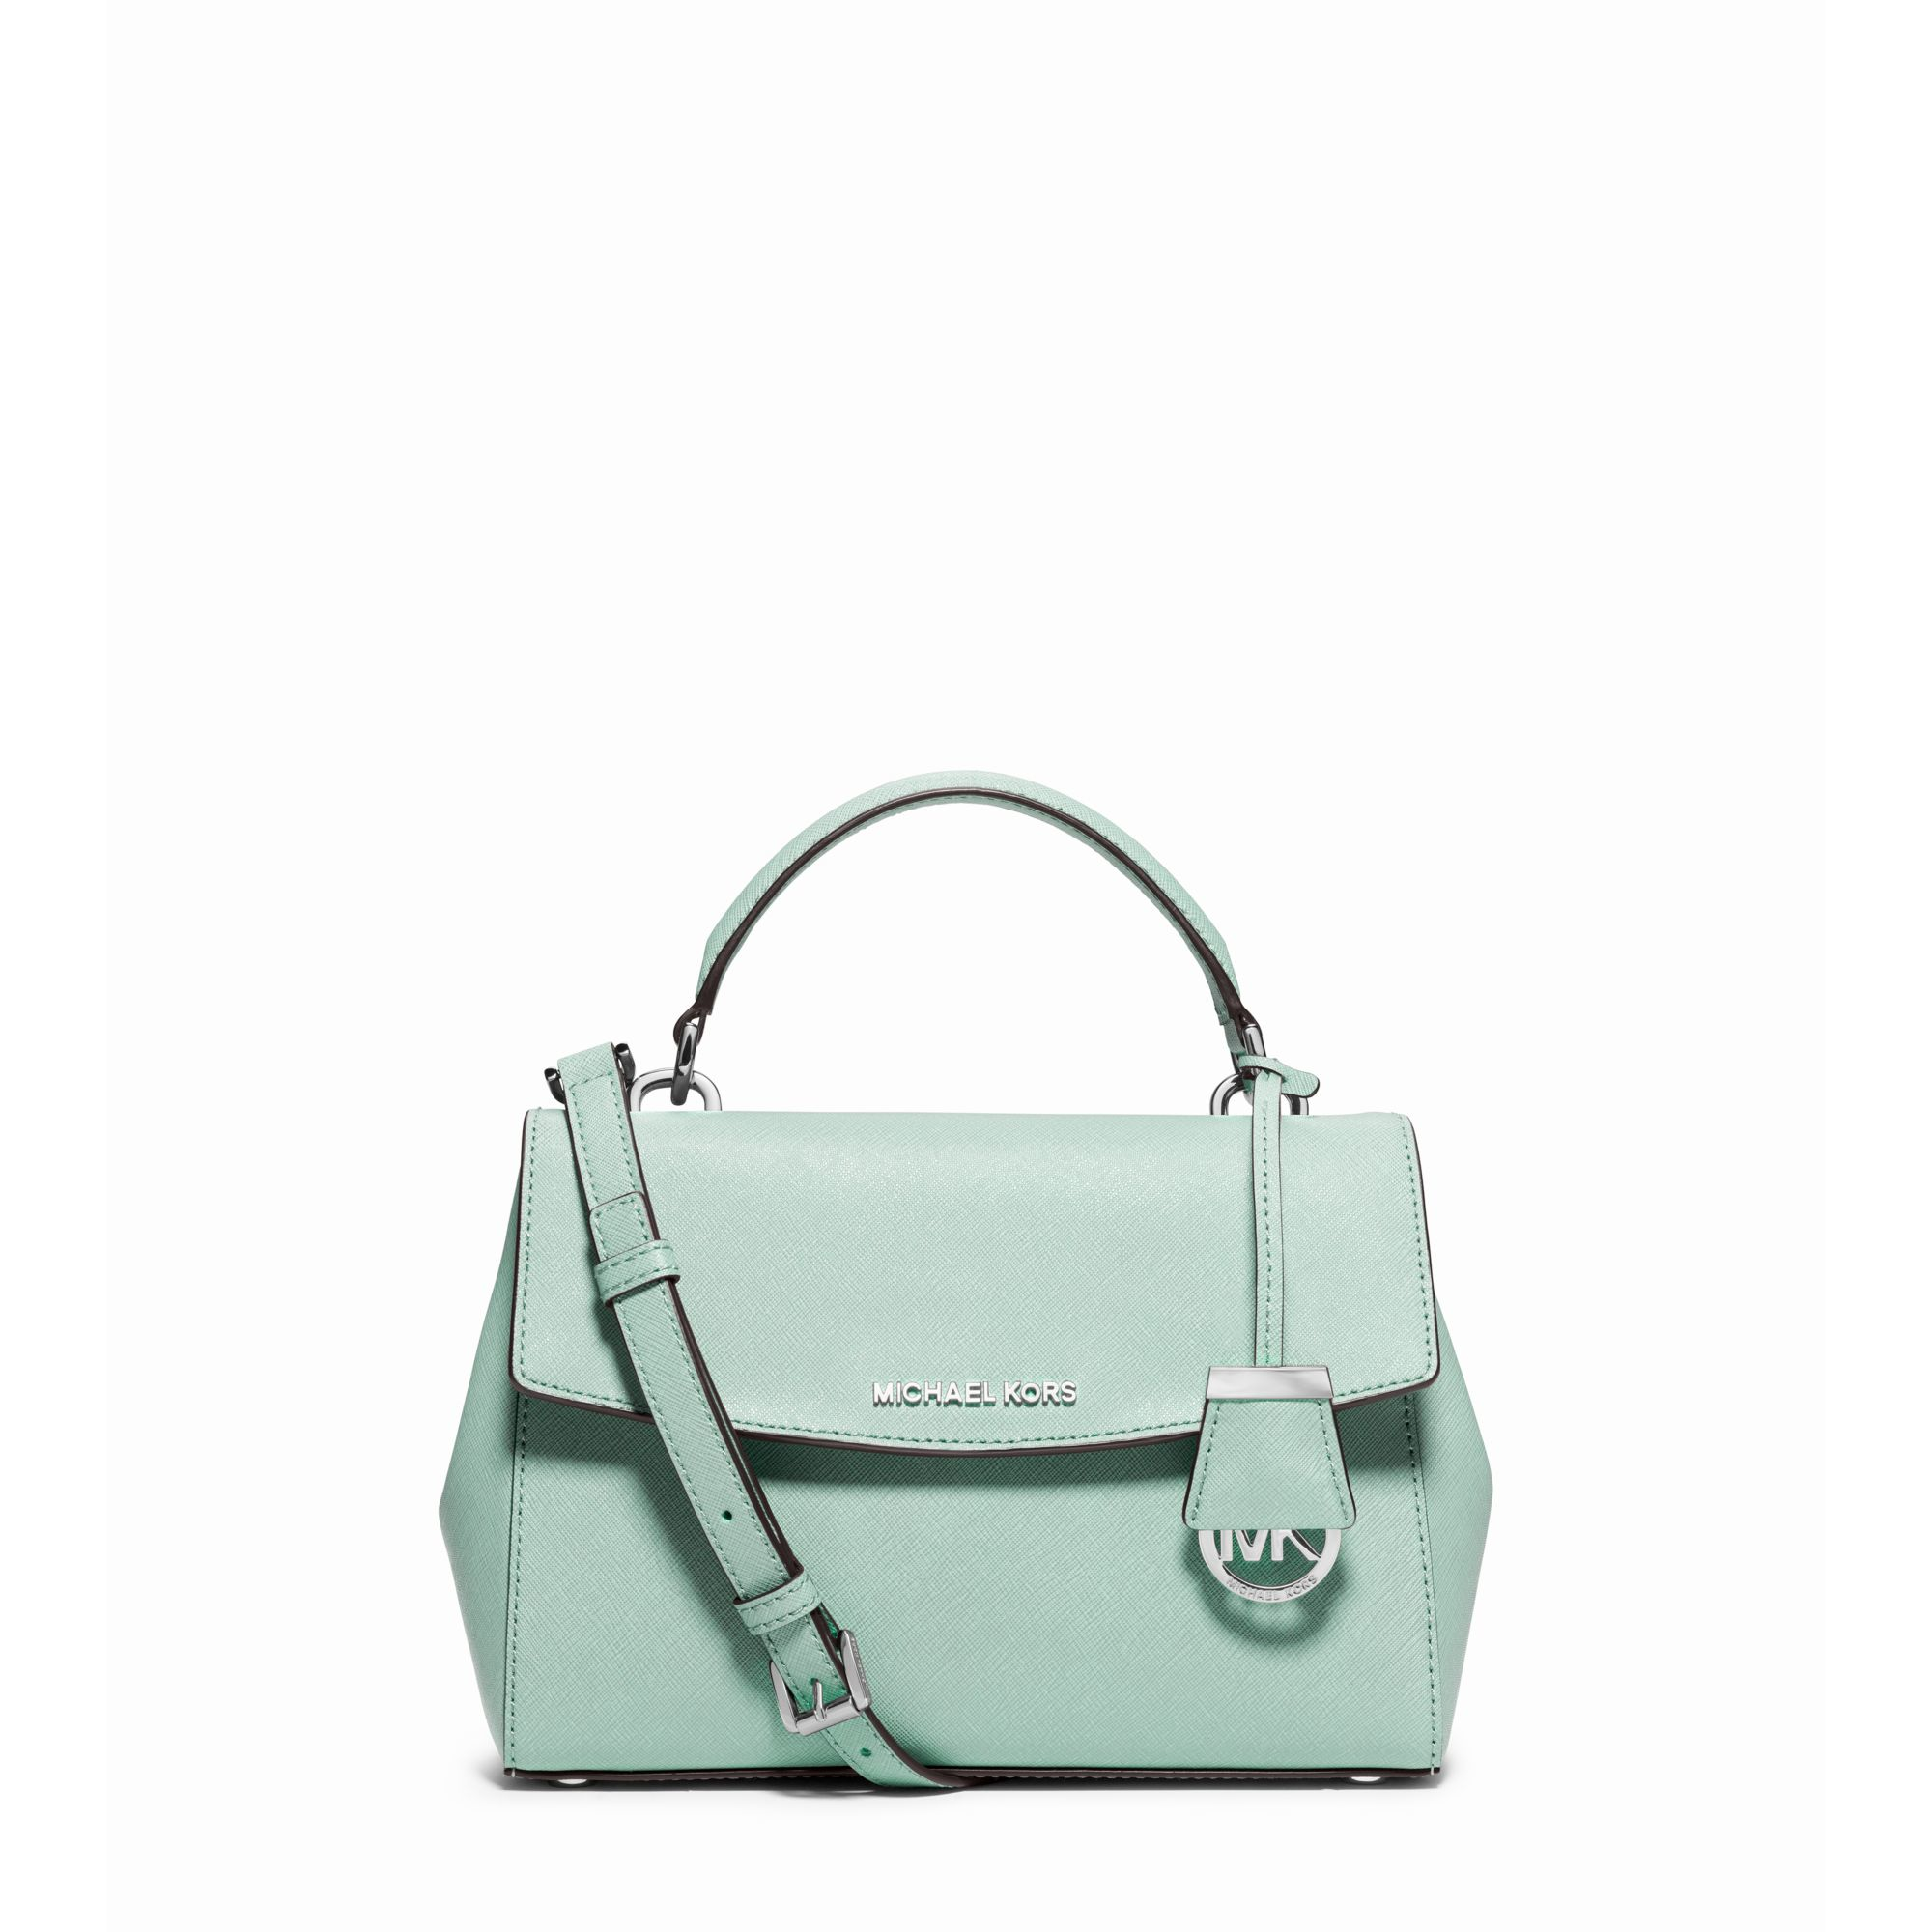 d18773c3e94e ... shopping lyst michael kors ava small saffiano leather satchel in green  521b2 ac949